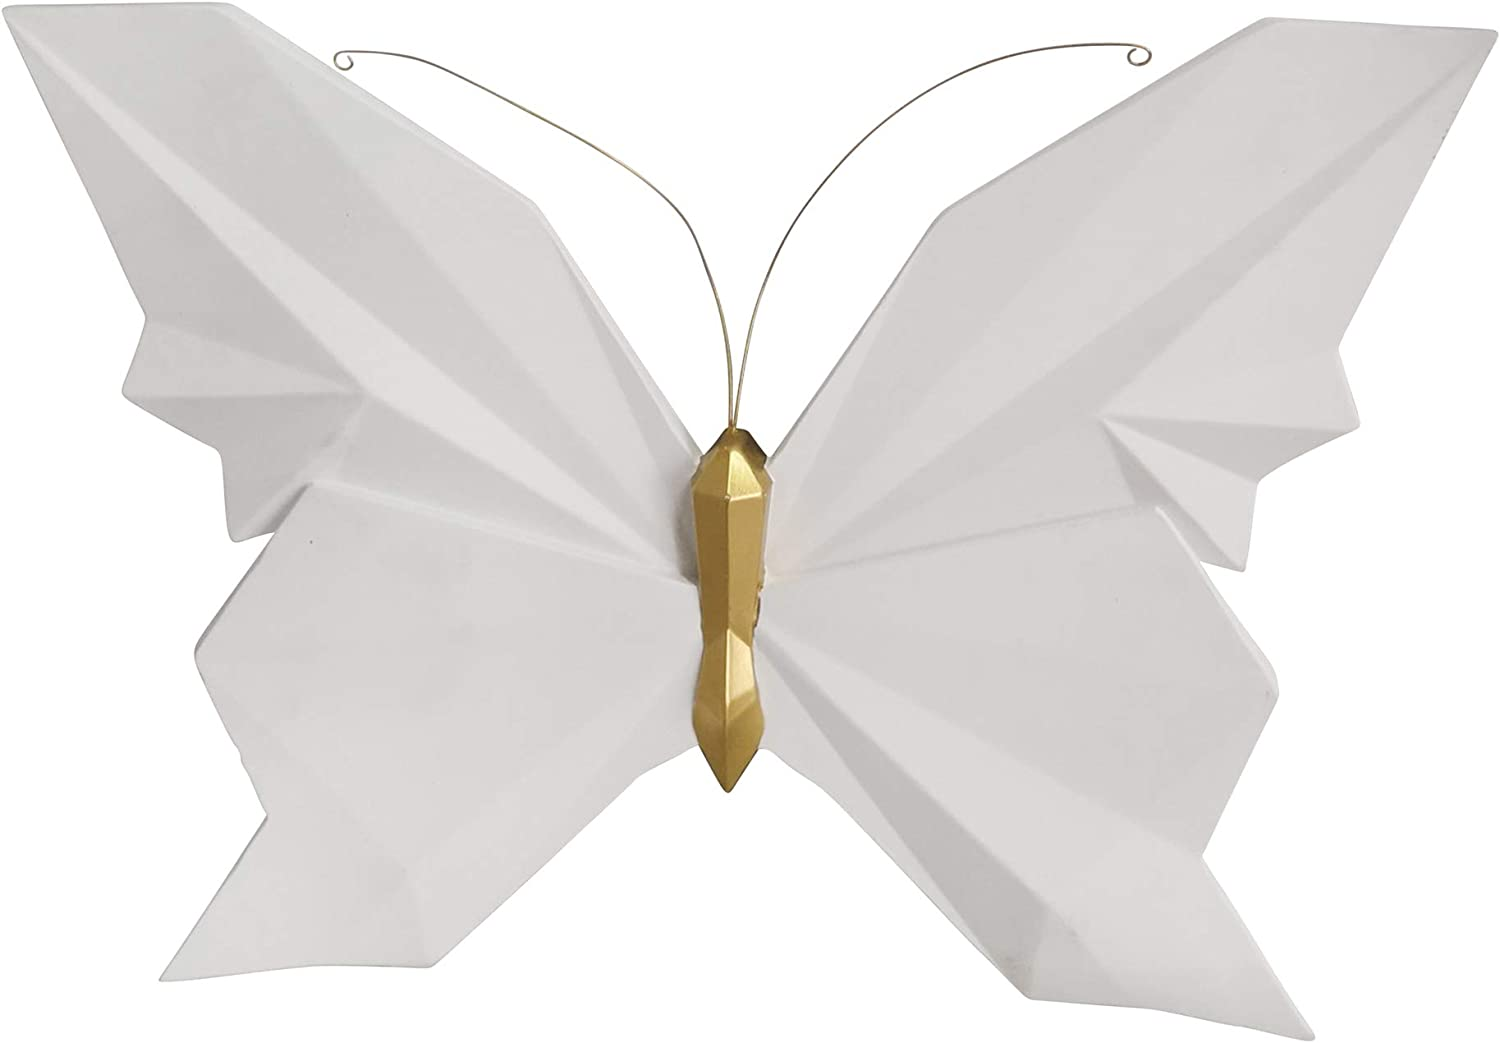 Sagebrook Home Resin Origami Butterfly Wall Decor 15 Inch, Medium, White